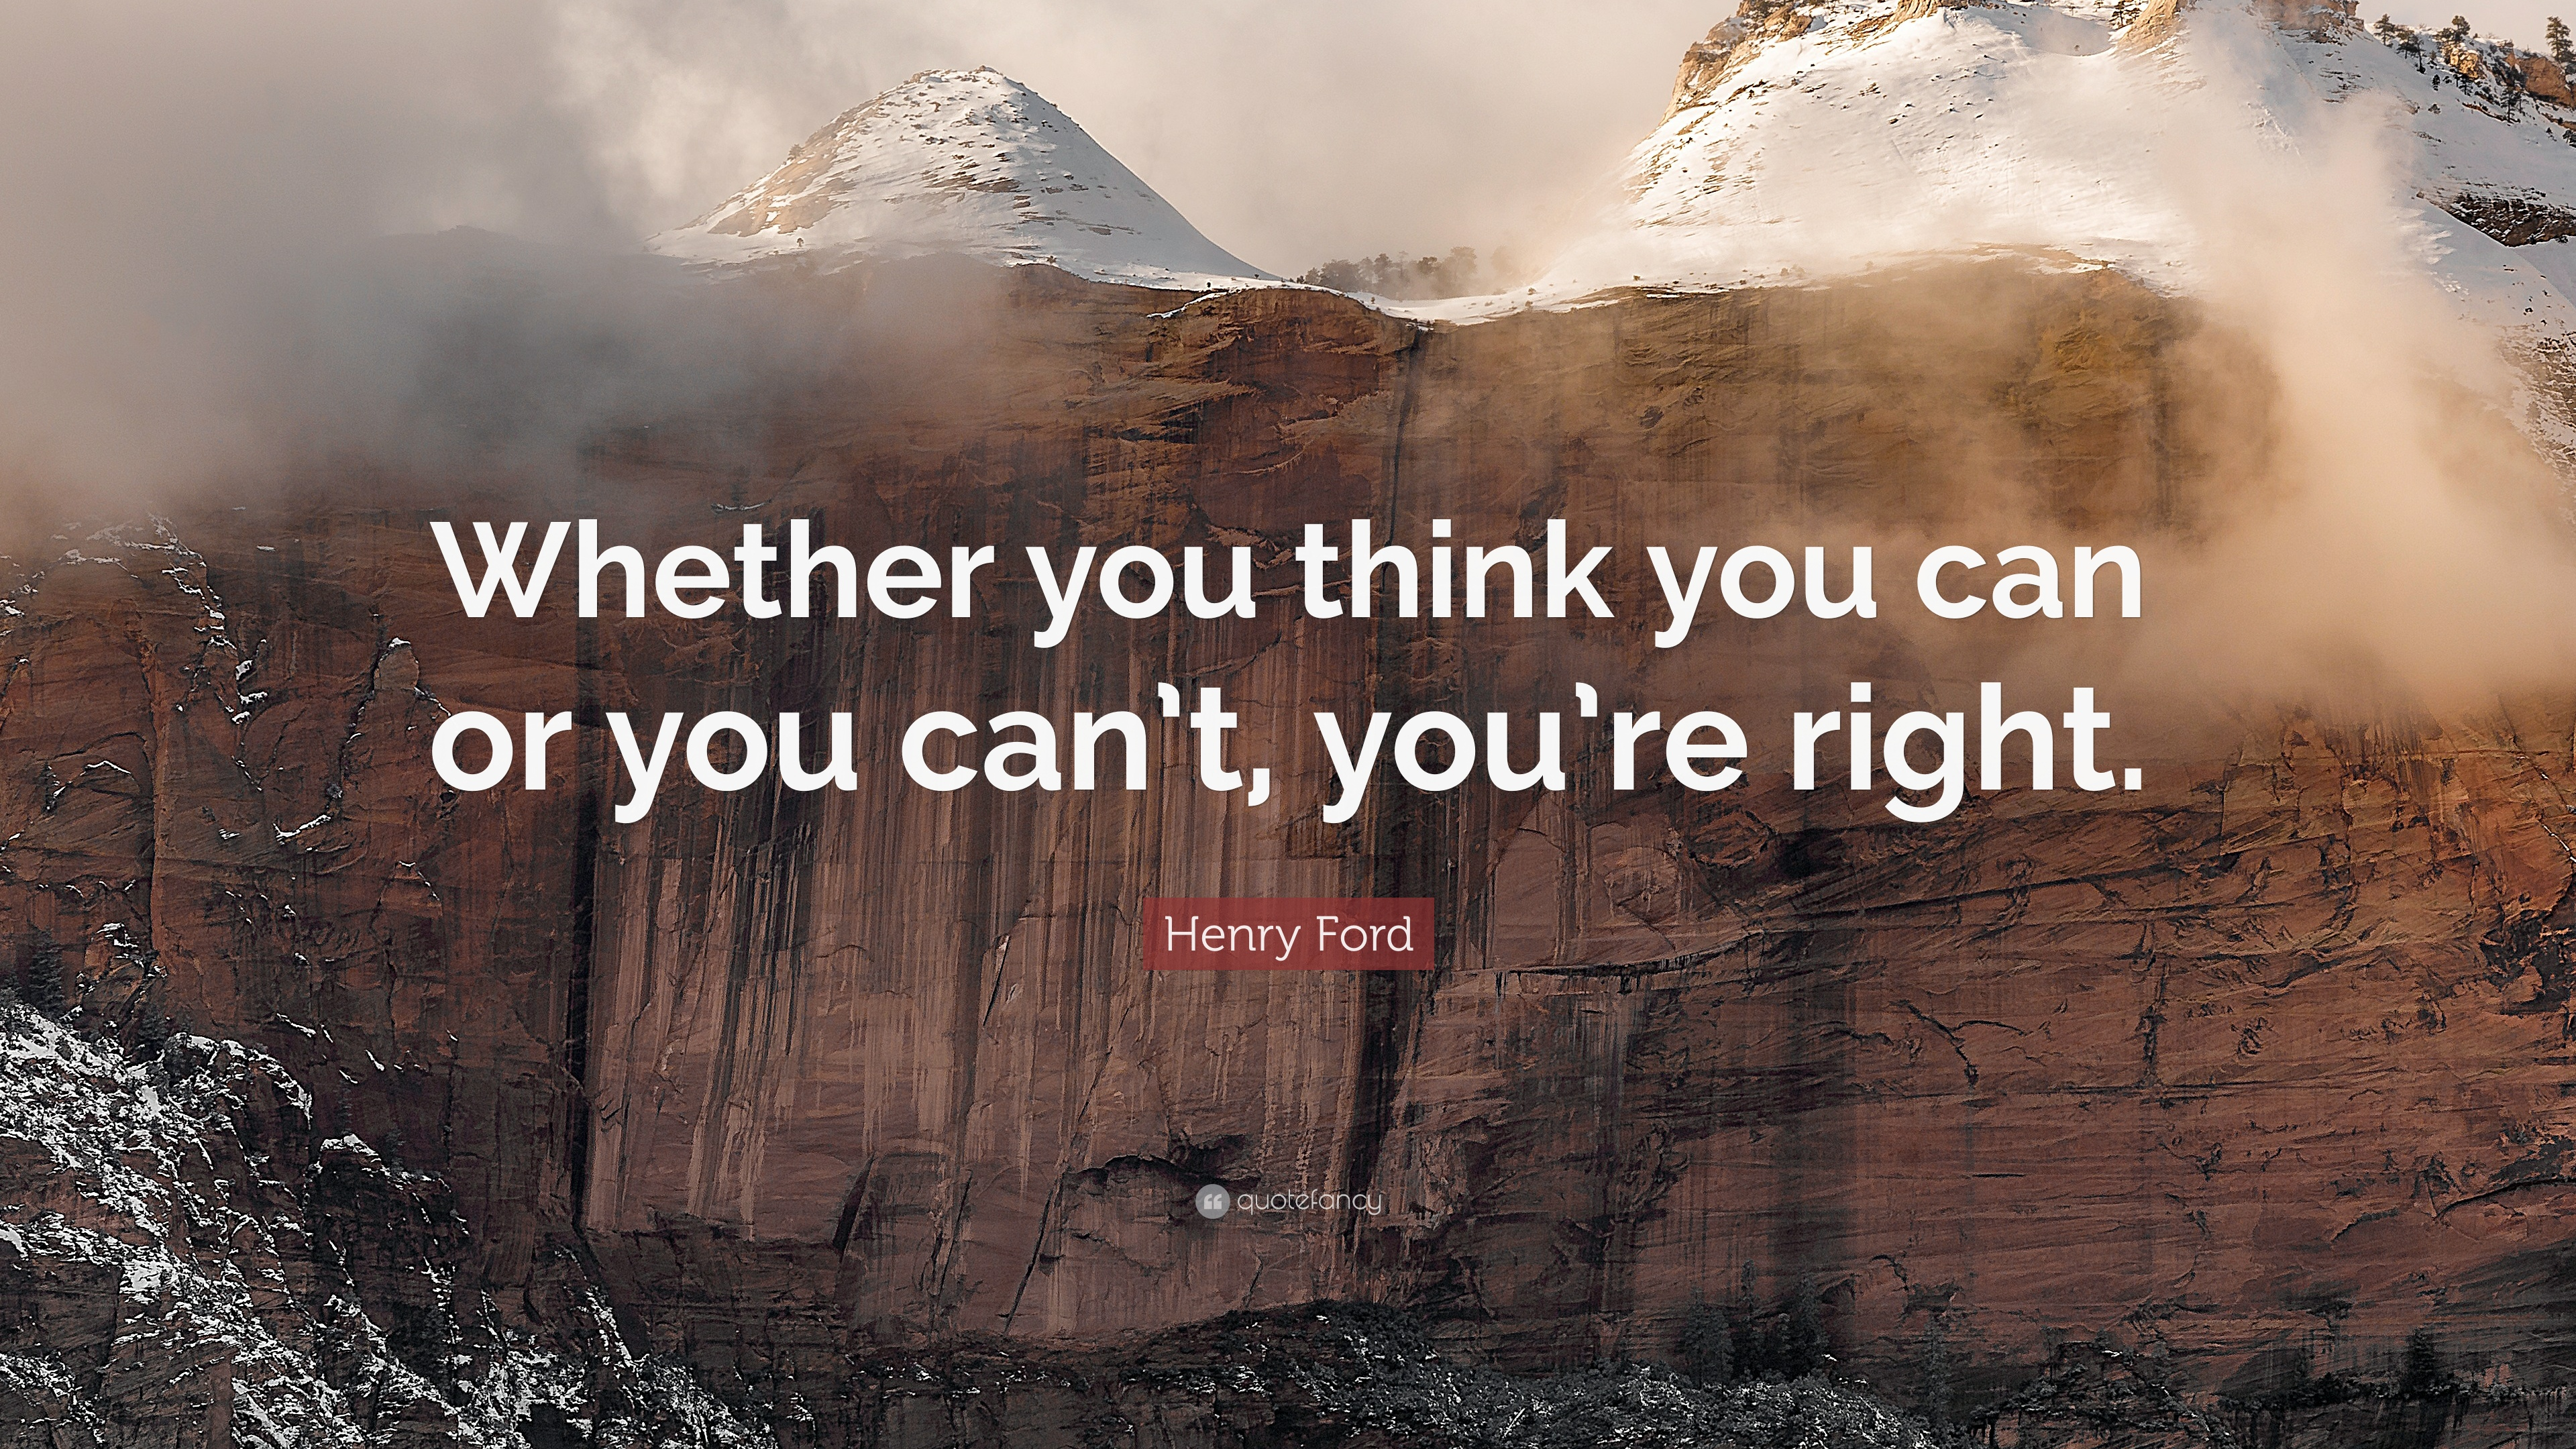 Henry Ford Quote Whether You Think You Can Or You Cant Youre